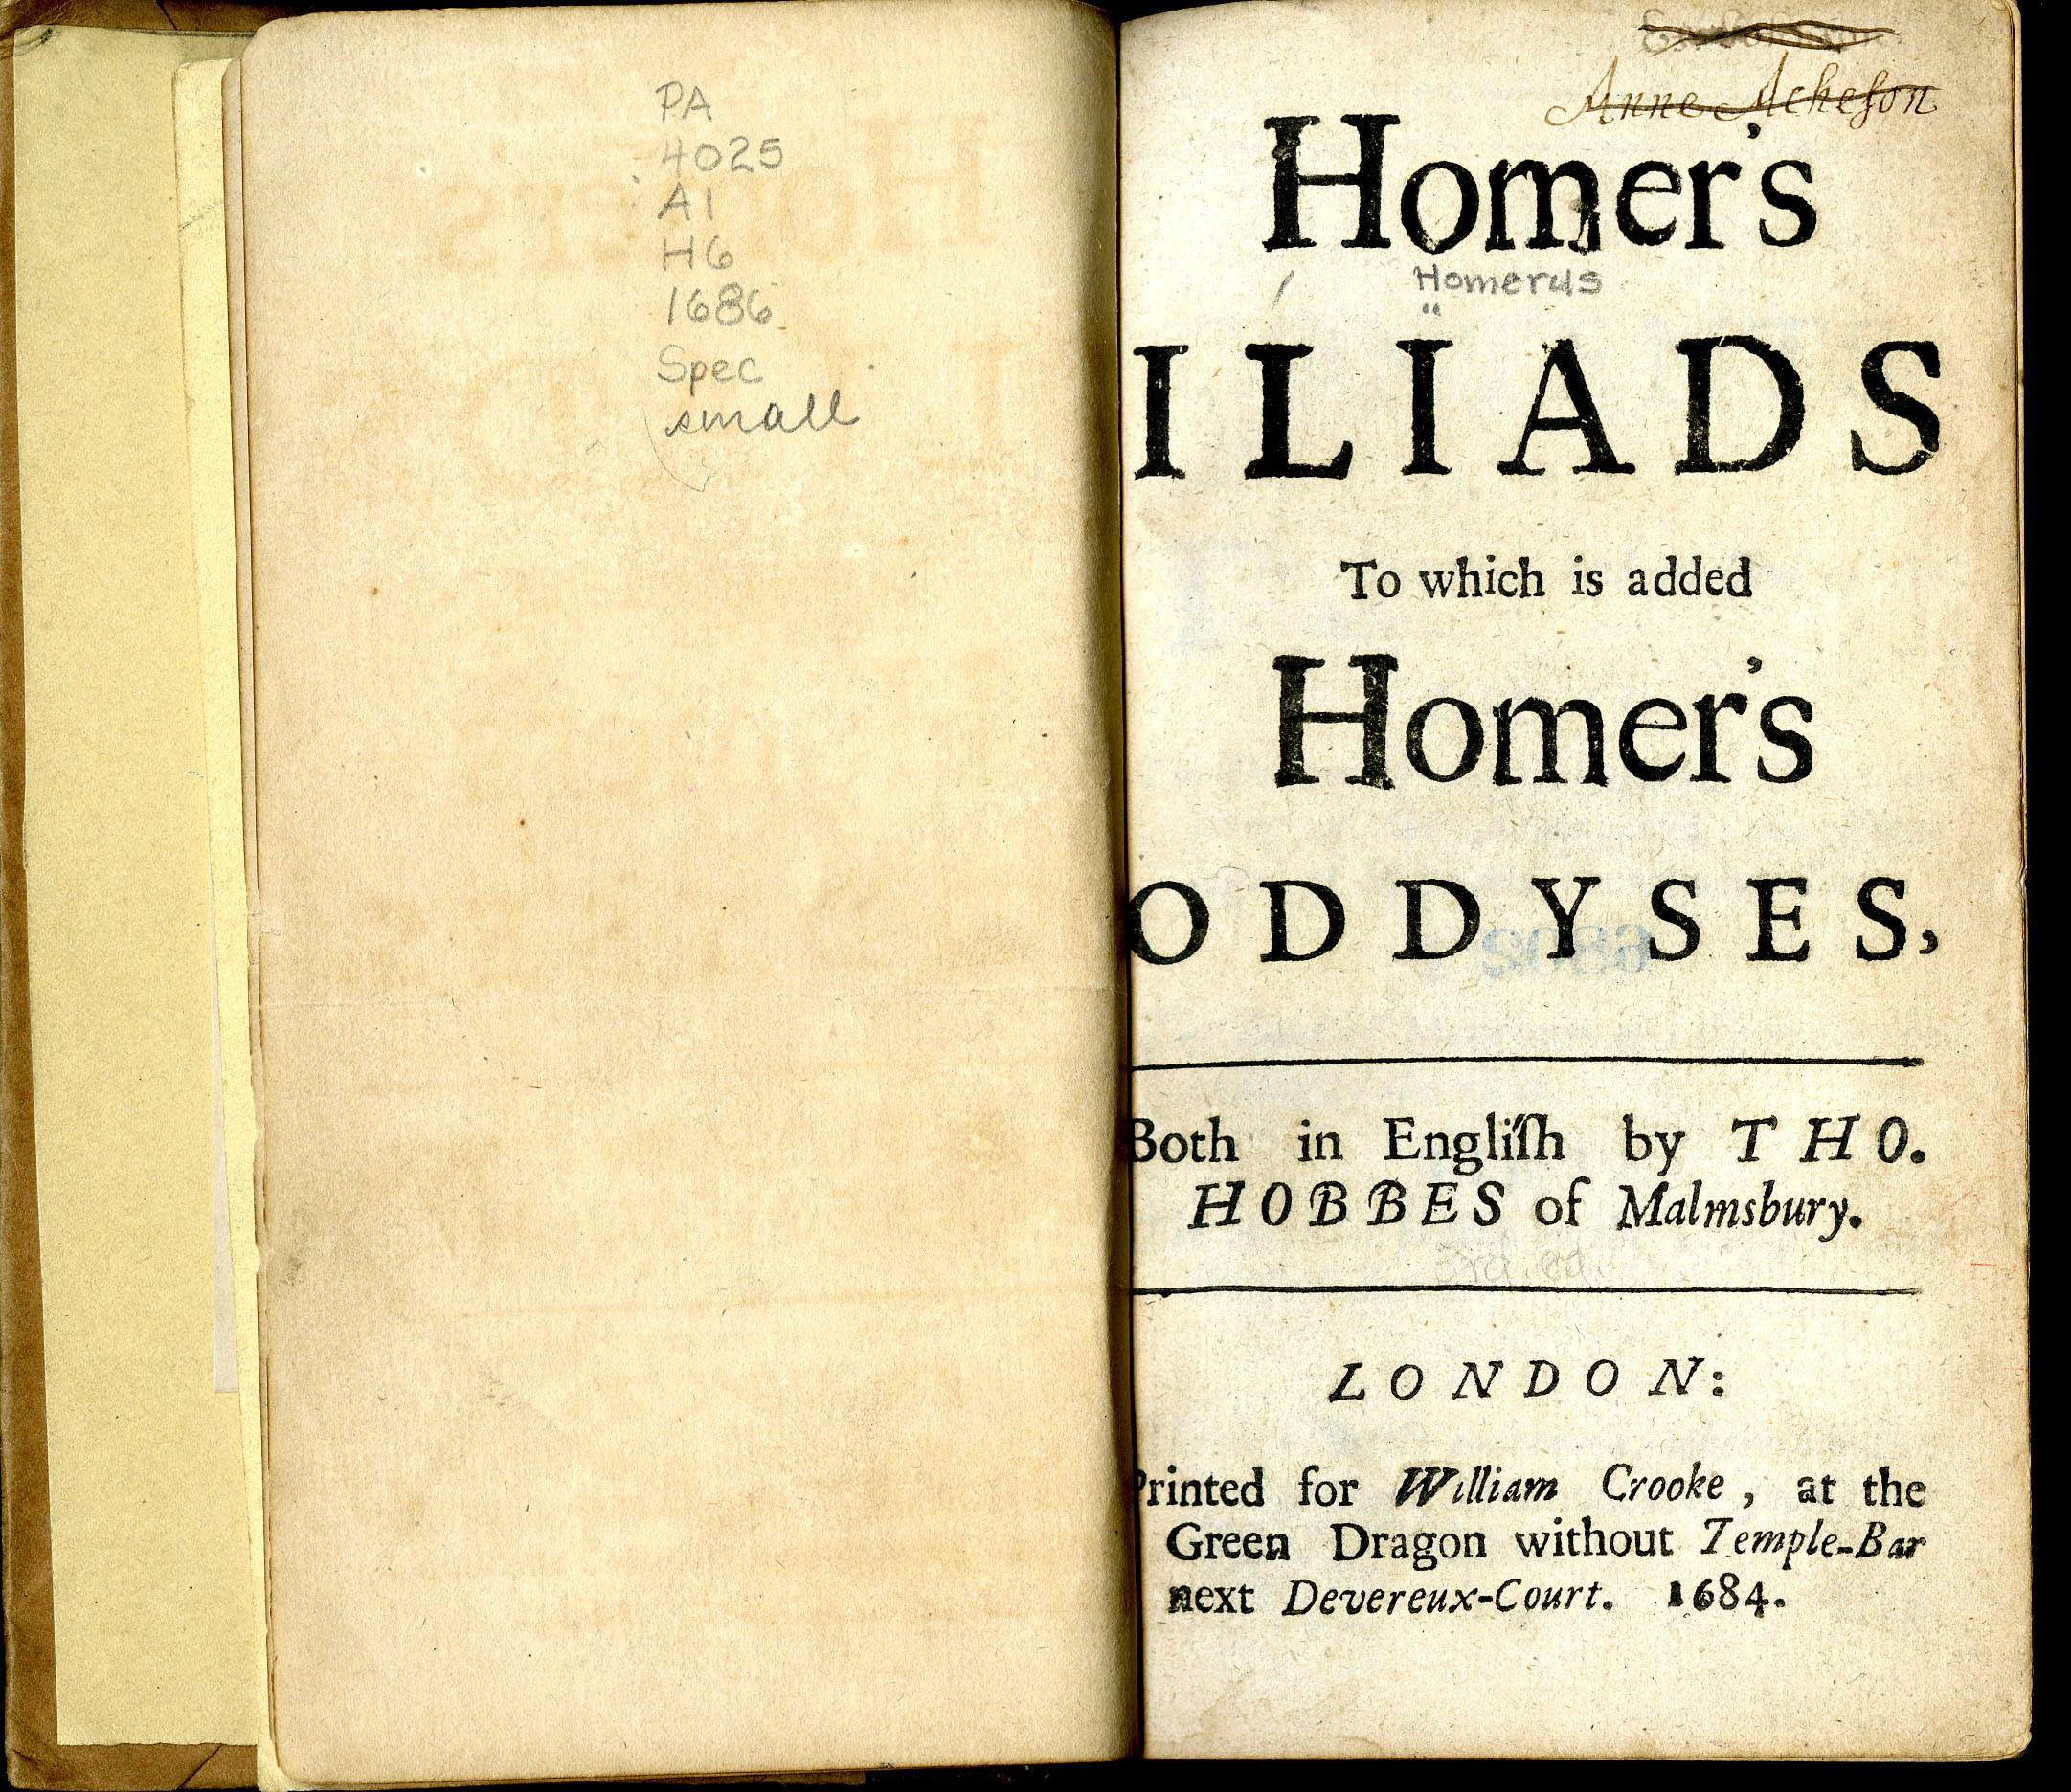 Thomas Hobbes's translations of Homer, 1684/1686